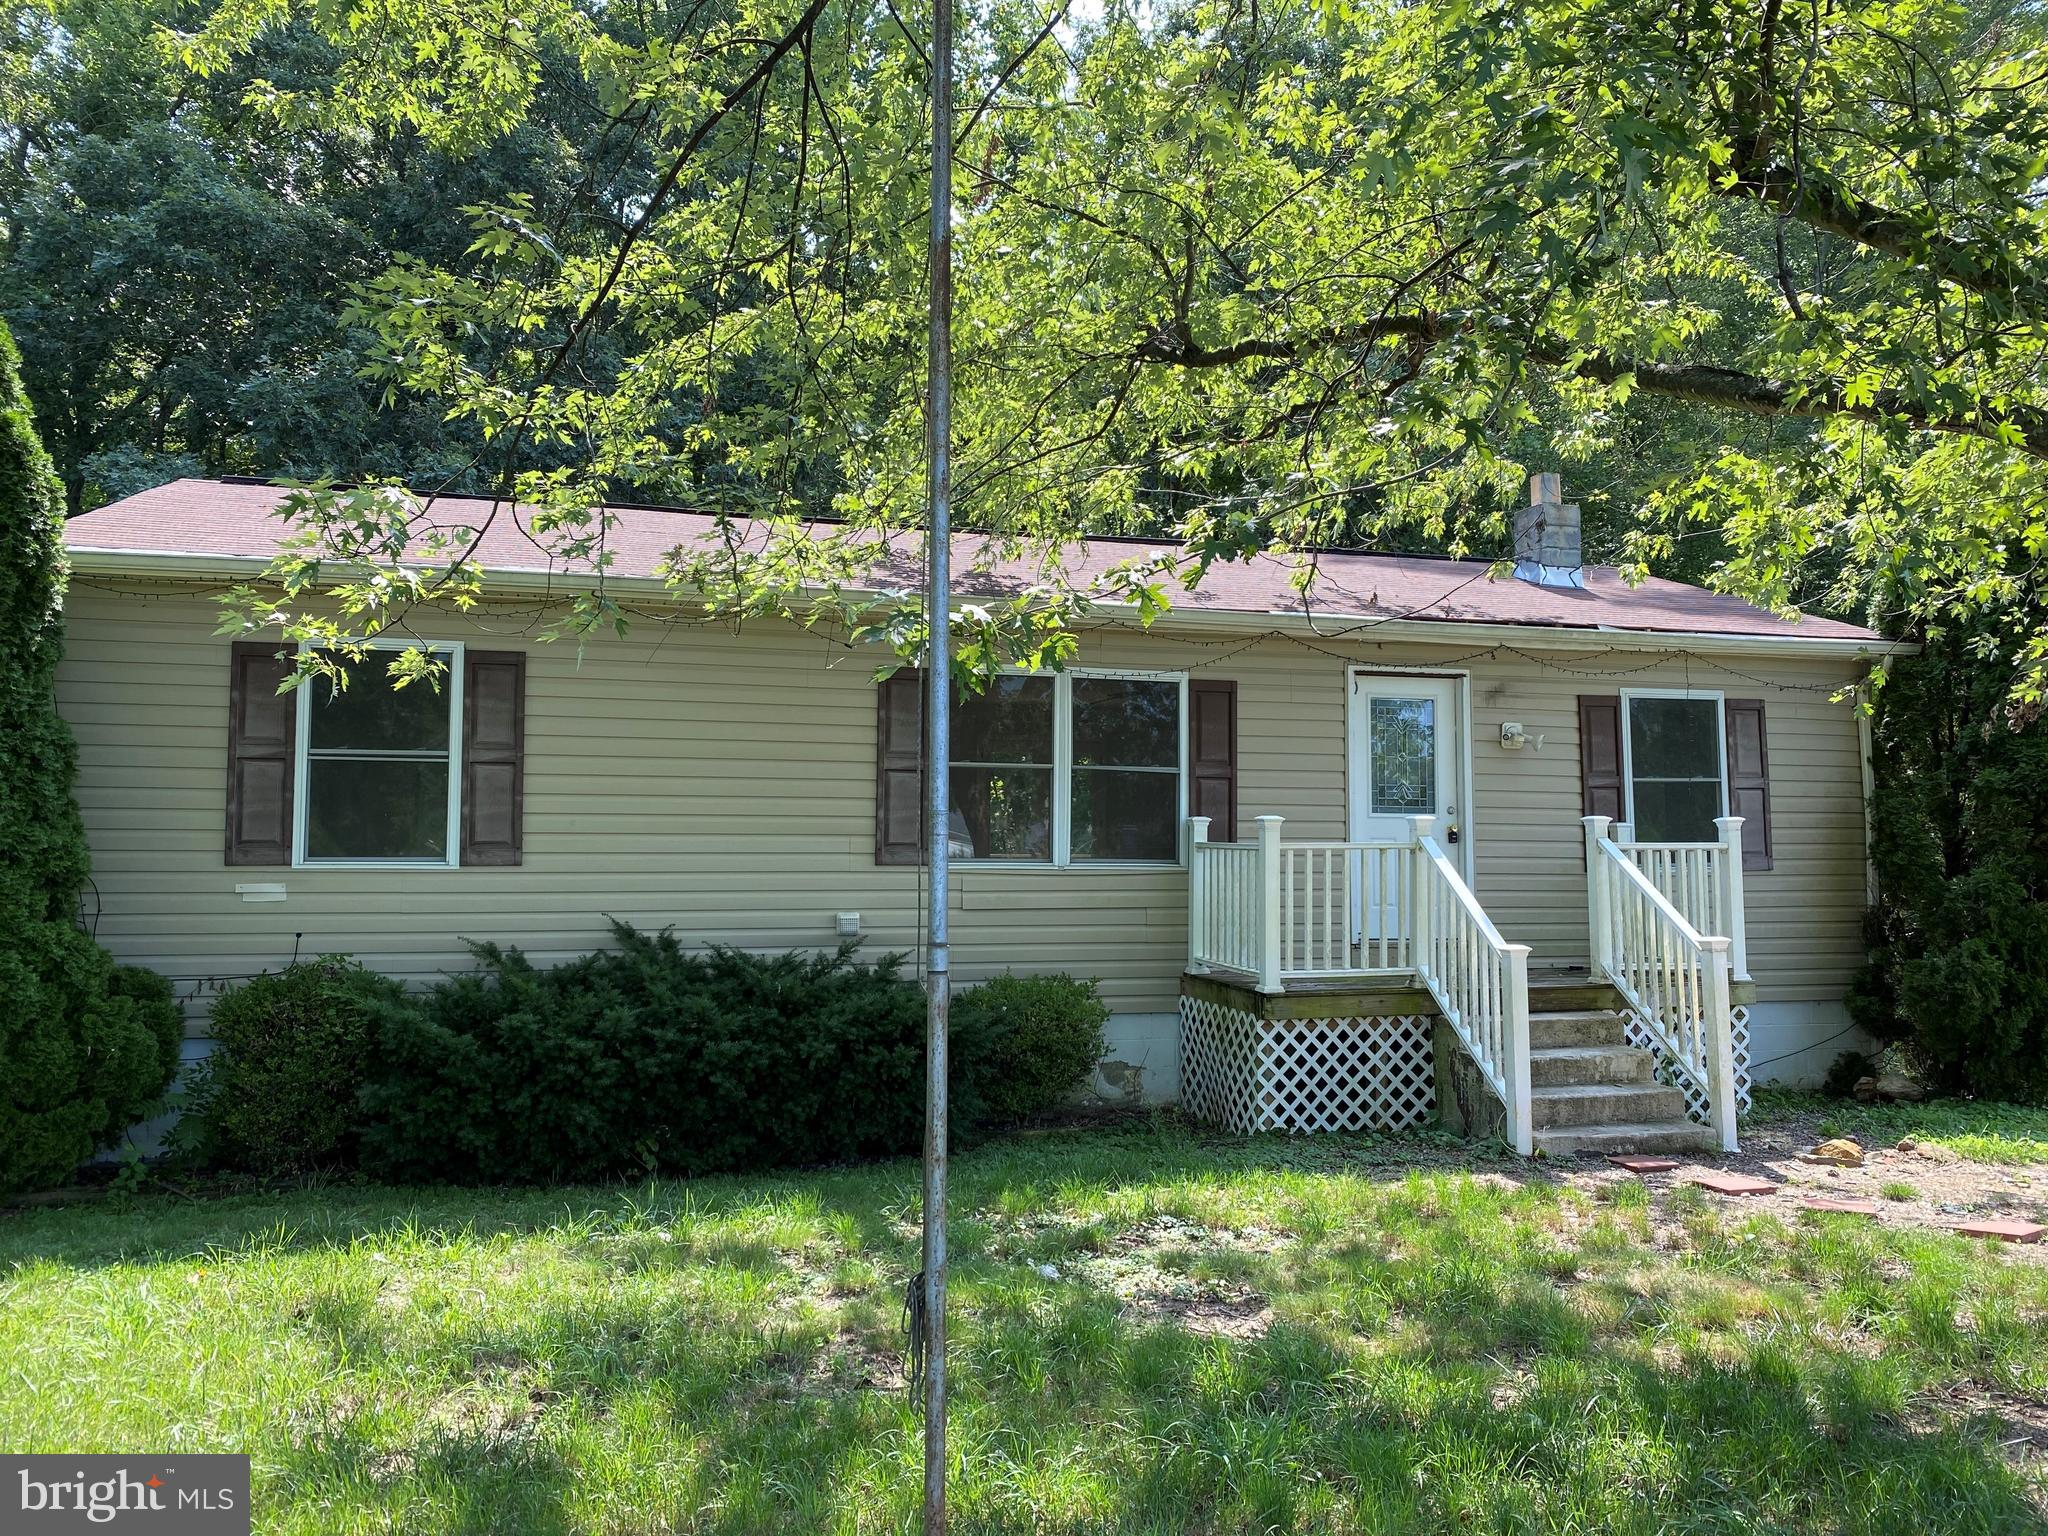 Seller is reviewing any/all fair offers!  This home needs some TLC but has been updated and is move in ready.  Home sold AS IS.   Don't miss the opportunity to own this 1BR/1BA Main Floor and 2 BR/1BA (Bedrooms not to code) in basement. Secluded rural Spotsylvania, so close to Lake Anna.  .91 acres plus an additional 3/4 acre lot goes with it.  Main floor features beautiful hardwood flooring, brand new kitchen cabinets, counter top, sink and ceramic tile!  Main Floor bedroom is huge and has great closet space!  Washer/Dryer convey (as is) and are on the main floor.  Very large, spacious and bright living room area with doors leading out to the brand new deck.  Lower level features 2 more bedrooms with new carpet, family room with wood burning stove, full bath and storage.  Lower level also has a back door leading to the patio under the deck.  There is NO HOA, so make this piece of land work for you!  Build a chicken pen, garden, plant grapes!   Plenty of parking!